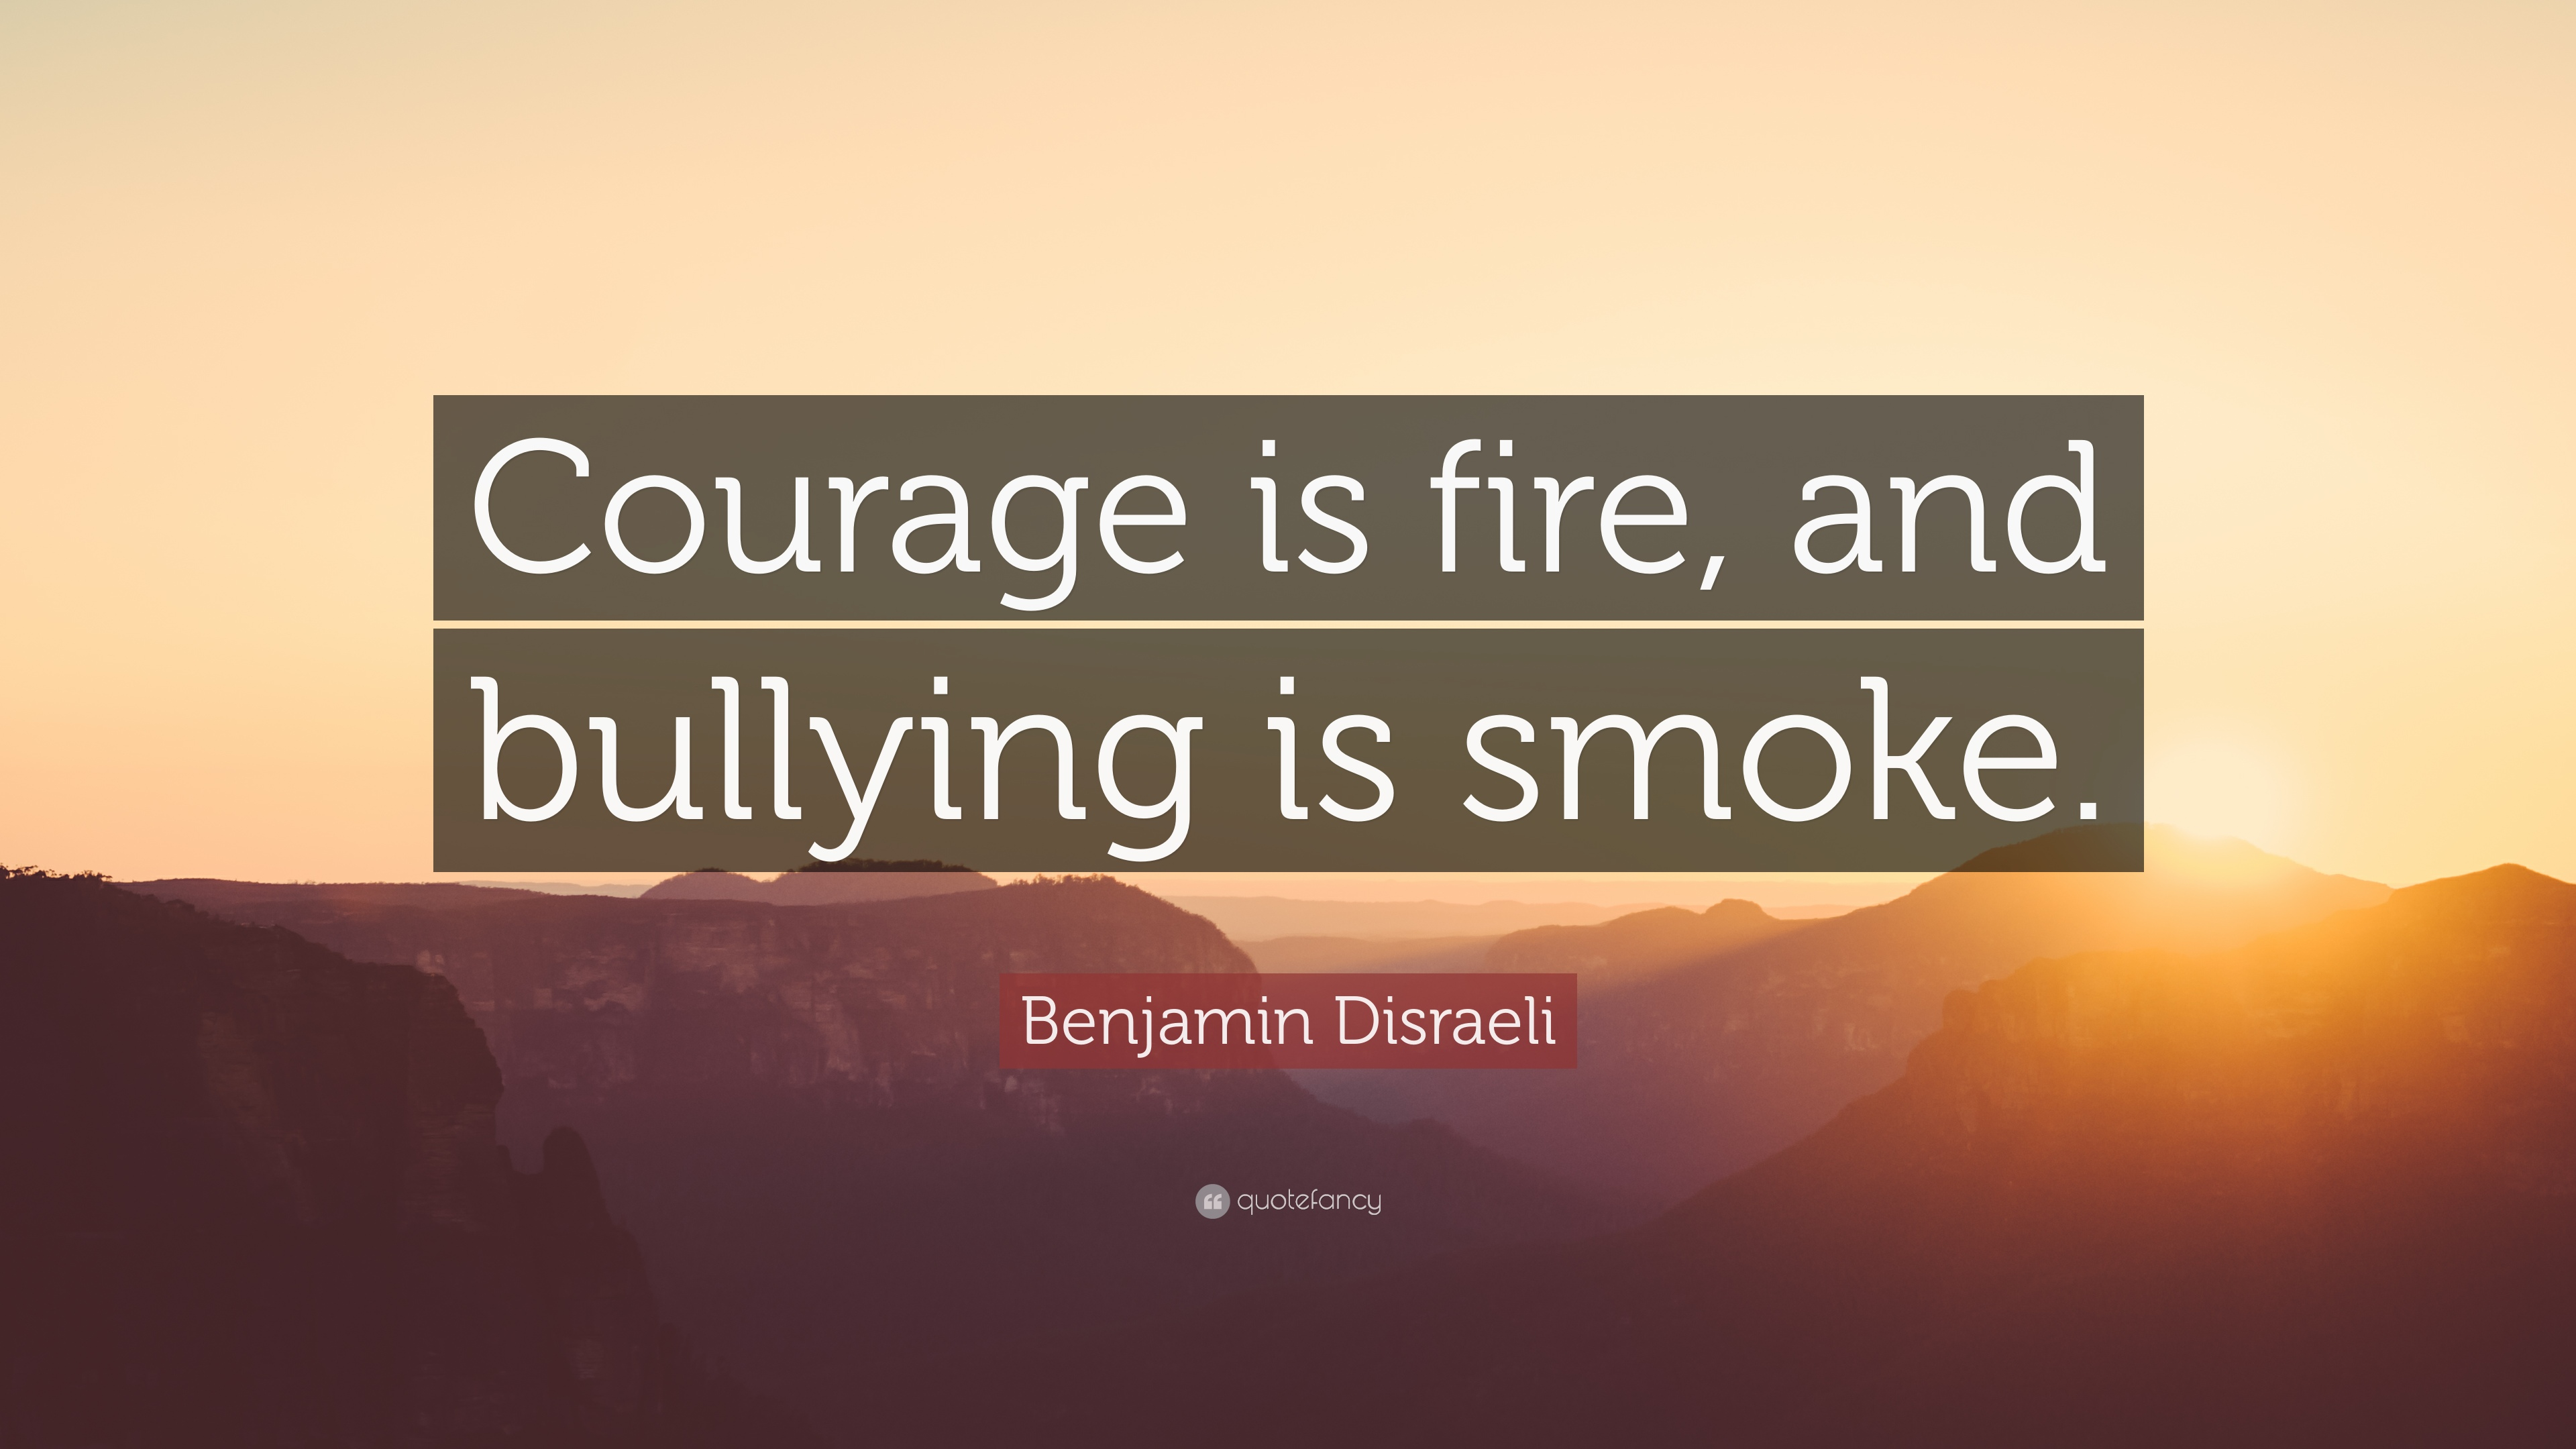 Bullying Quotes Inspiration Bullying Quotes 40 Wallpapers  Quotefancy